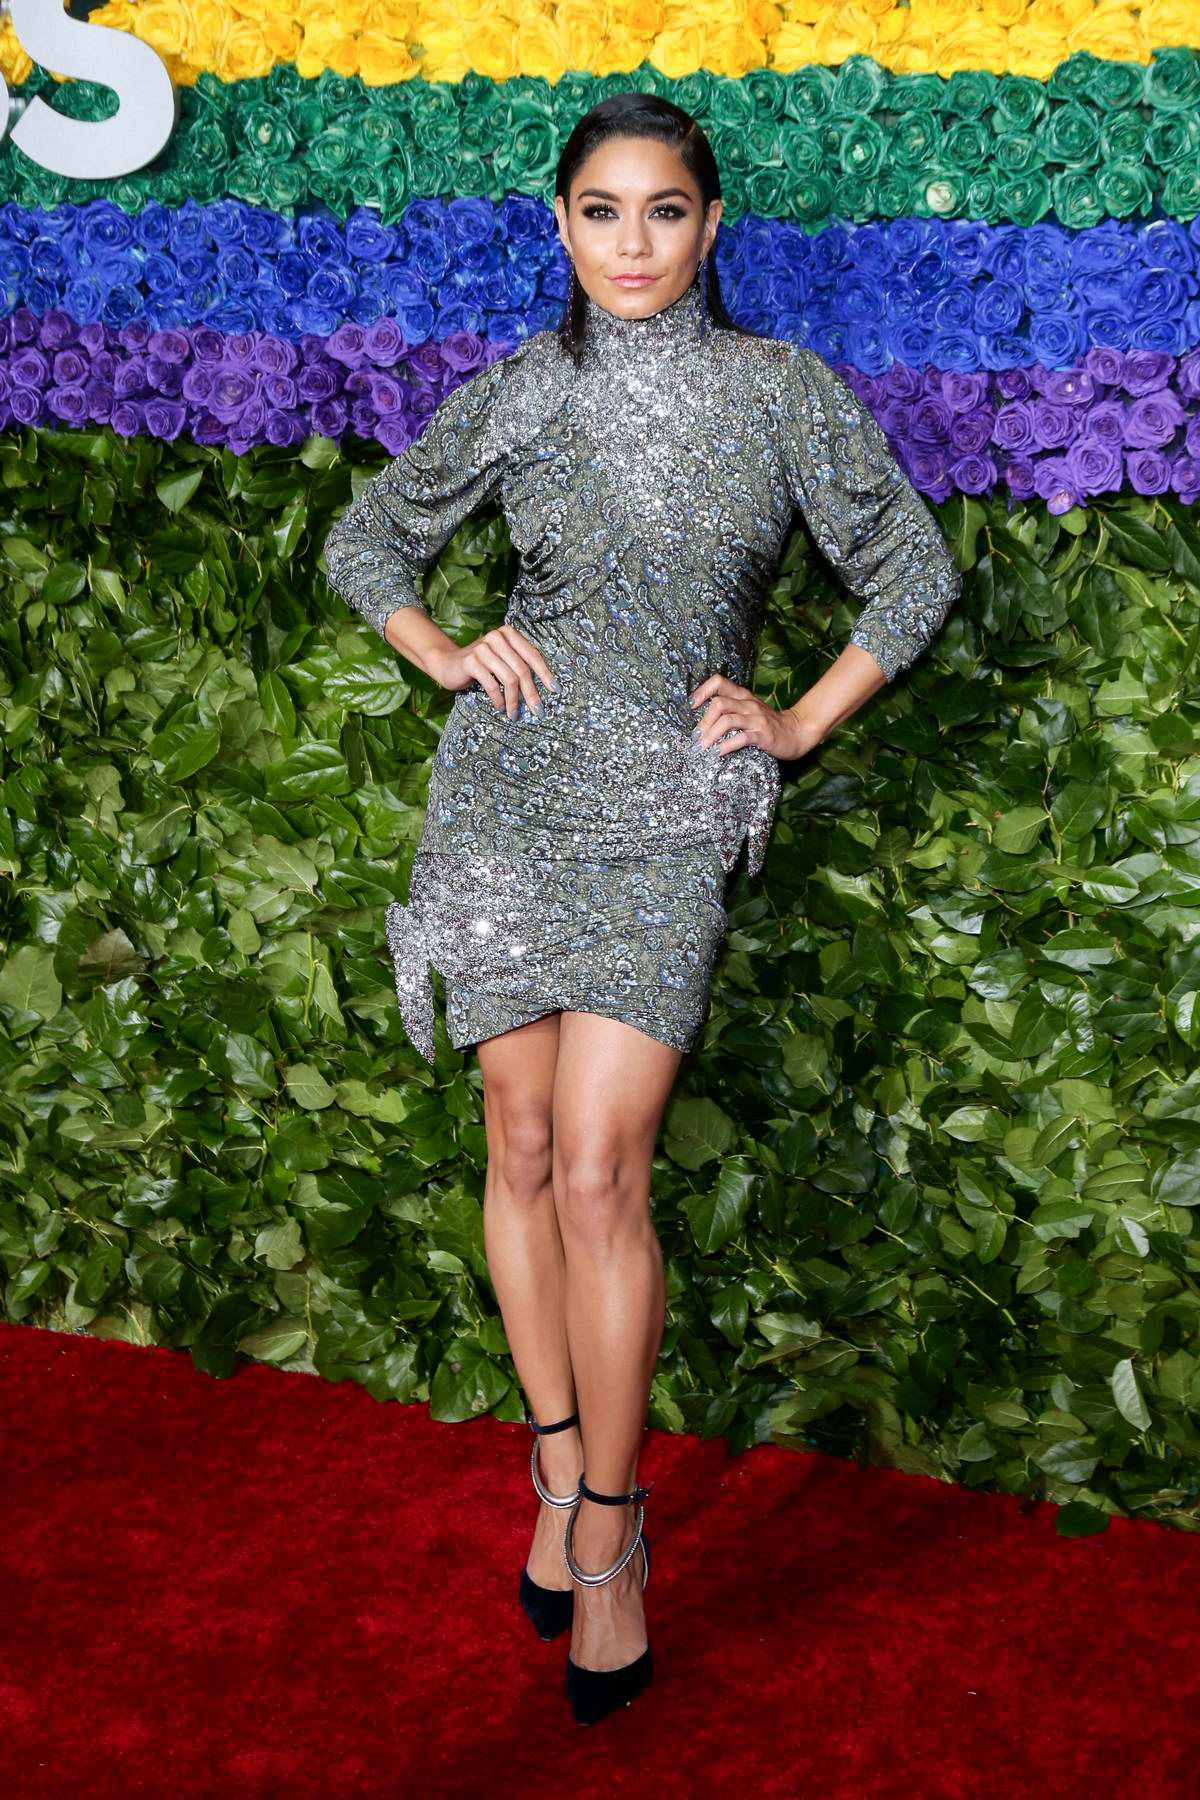 Vanessa Hudgens attends the 73rd annual Tony Awards at Radio City Music Hall in New York City